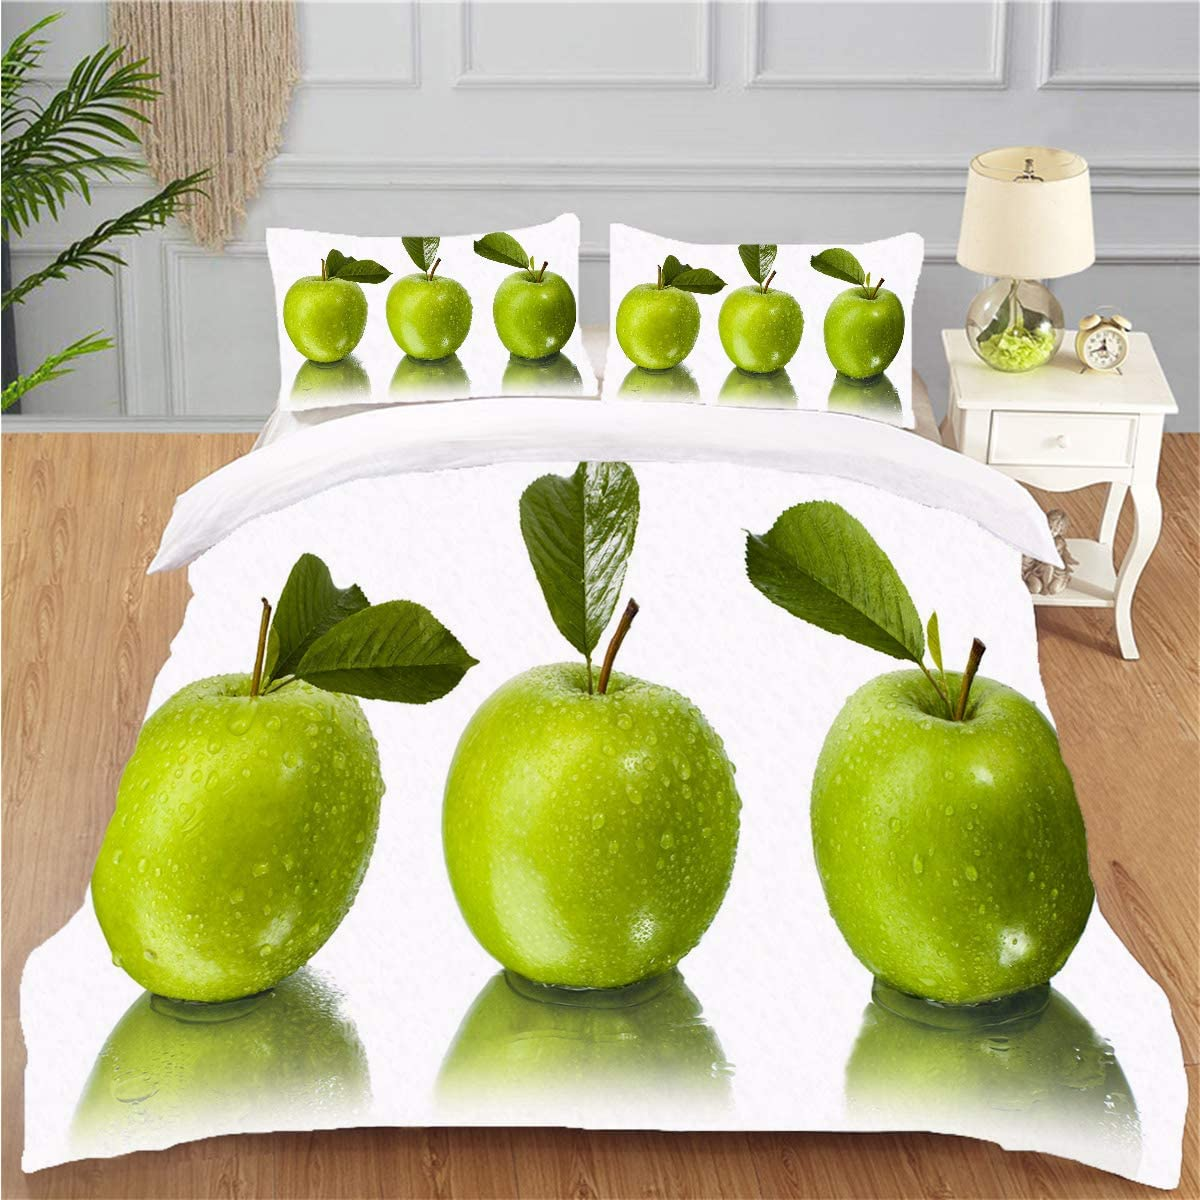 OTTOSUN Bedding Personality 3 Piece Duvet Cover Set Three Green Apples Stood Side by Side with Their Reflections belowgreen White Soft Breathable Home Warm Duvet Comforter Cover,Full